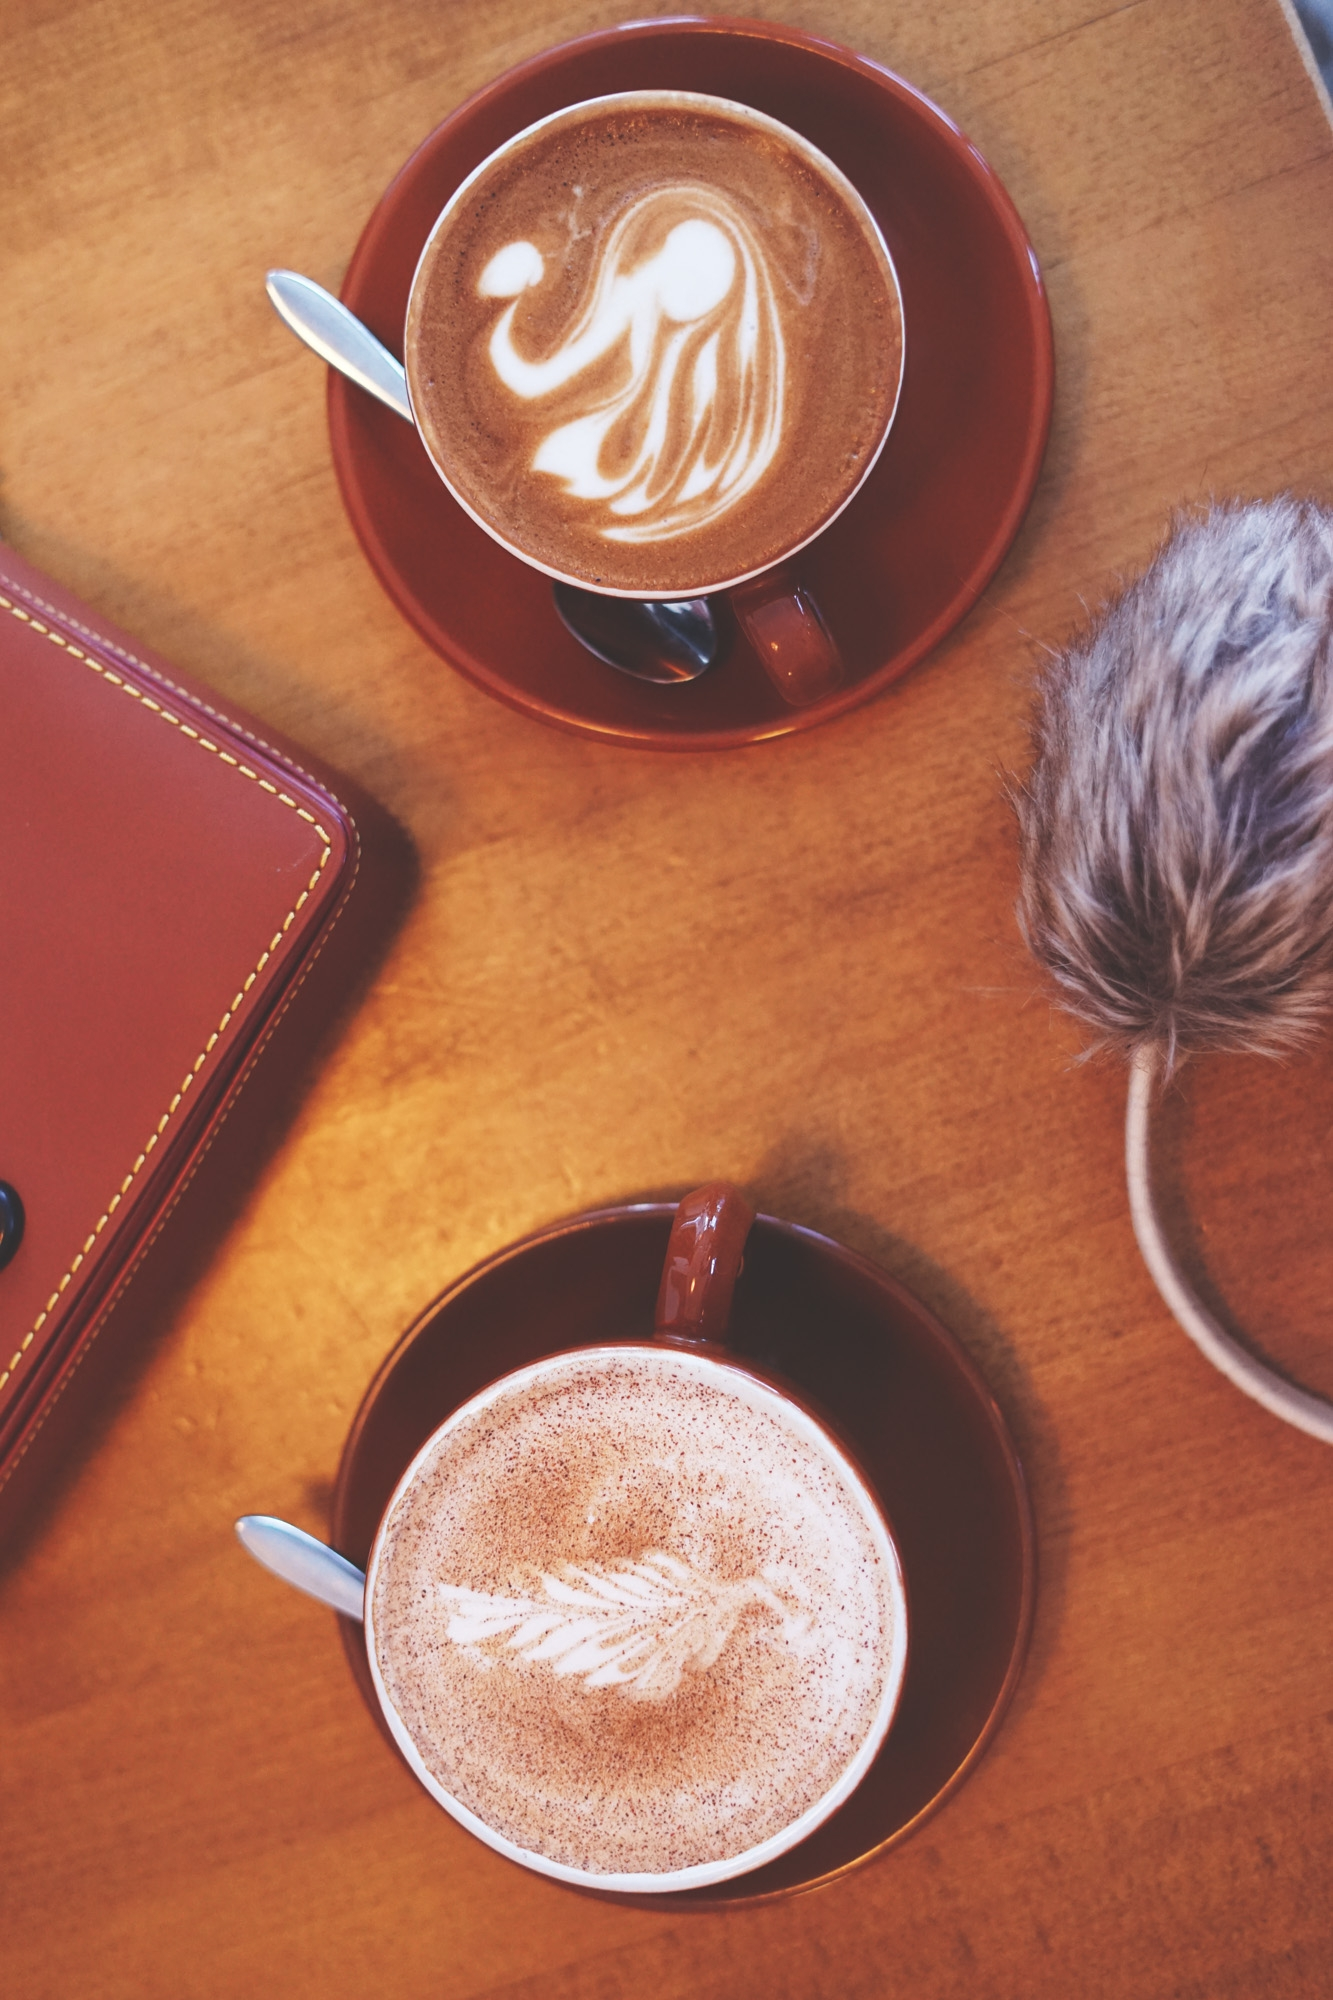 From lattes to hot cocoa, you won't be disappointed in the foam art. No cup left behind.